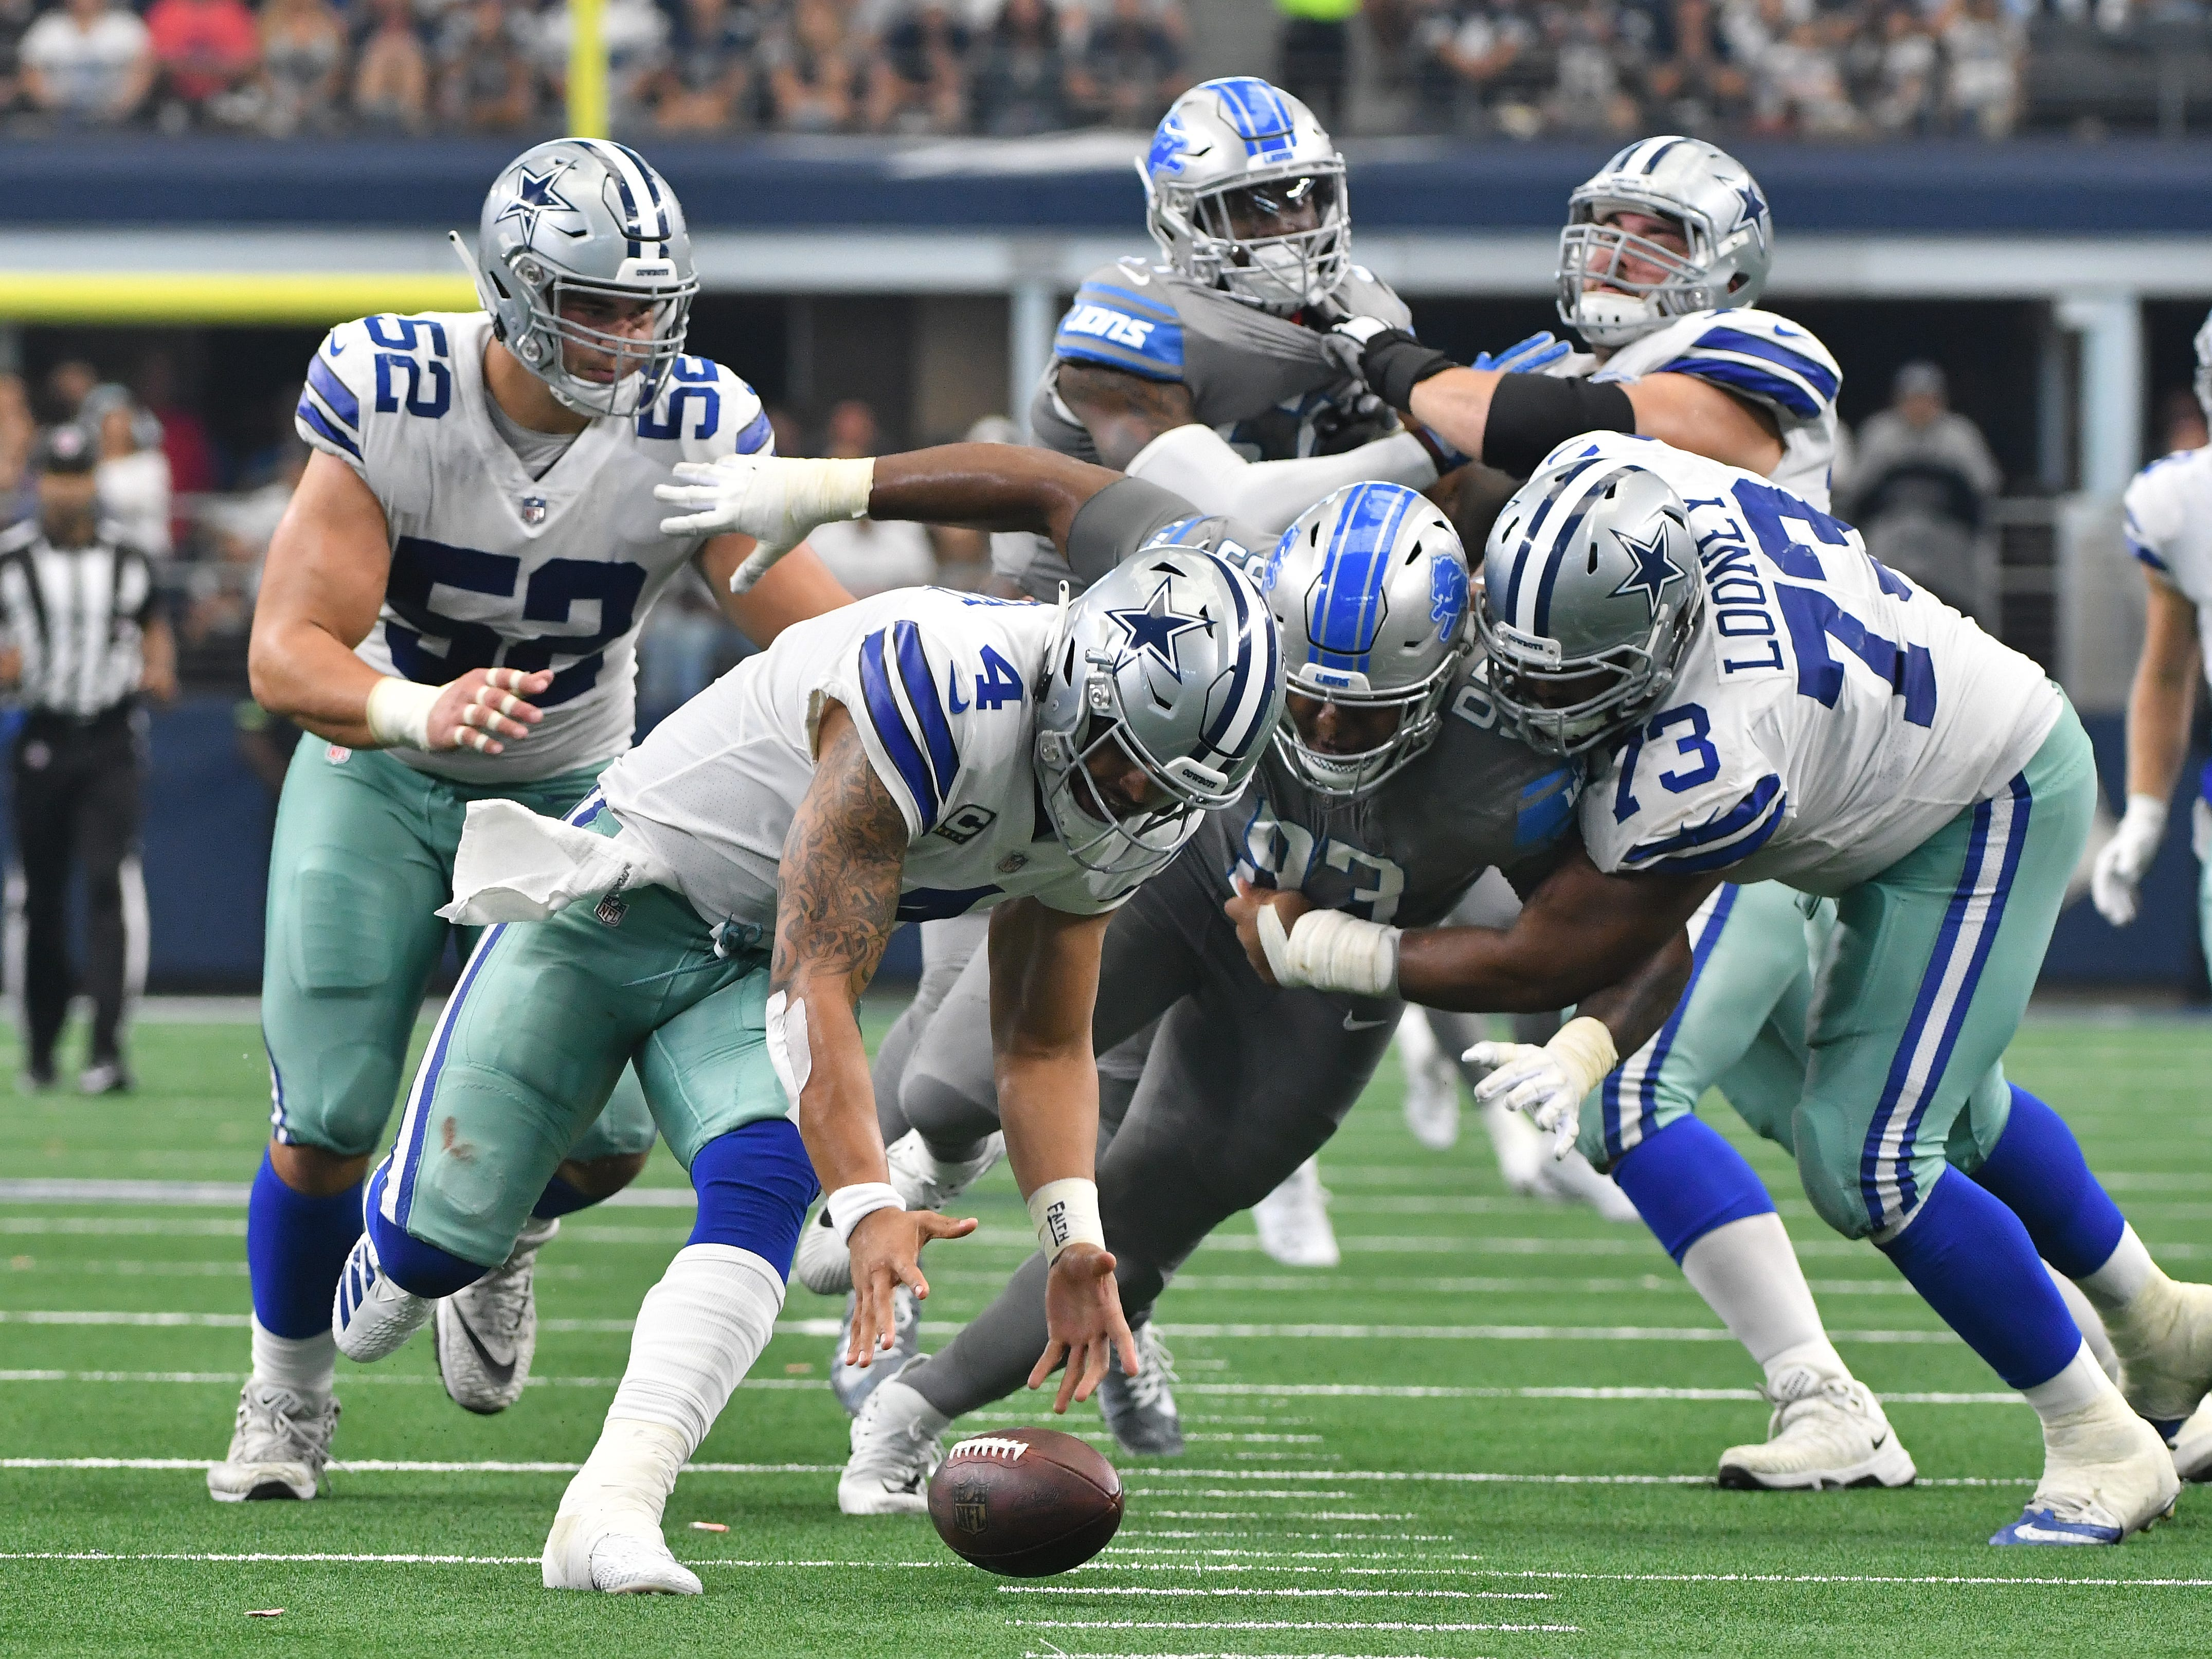 Cowboys quarterback Das Prescott's finds the football and begins to chase it down as teammate Joe Looney holds back Lions' Da'Shawn Hand who forced the fumble late in the fourth quarter.